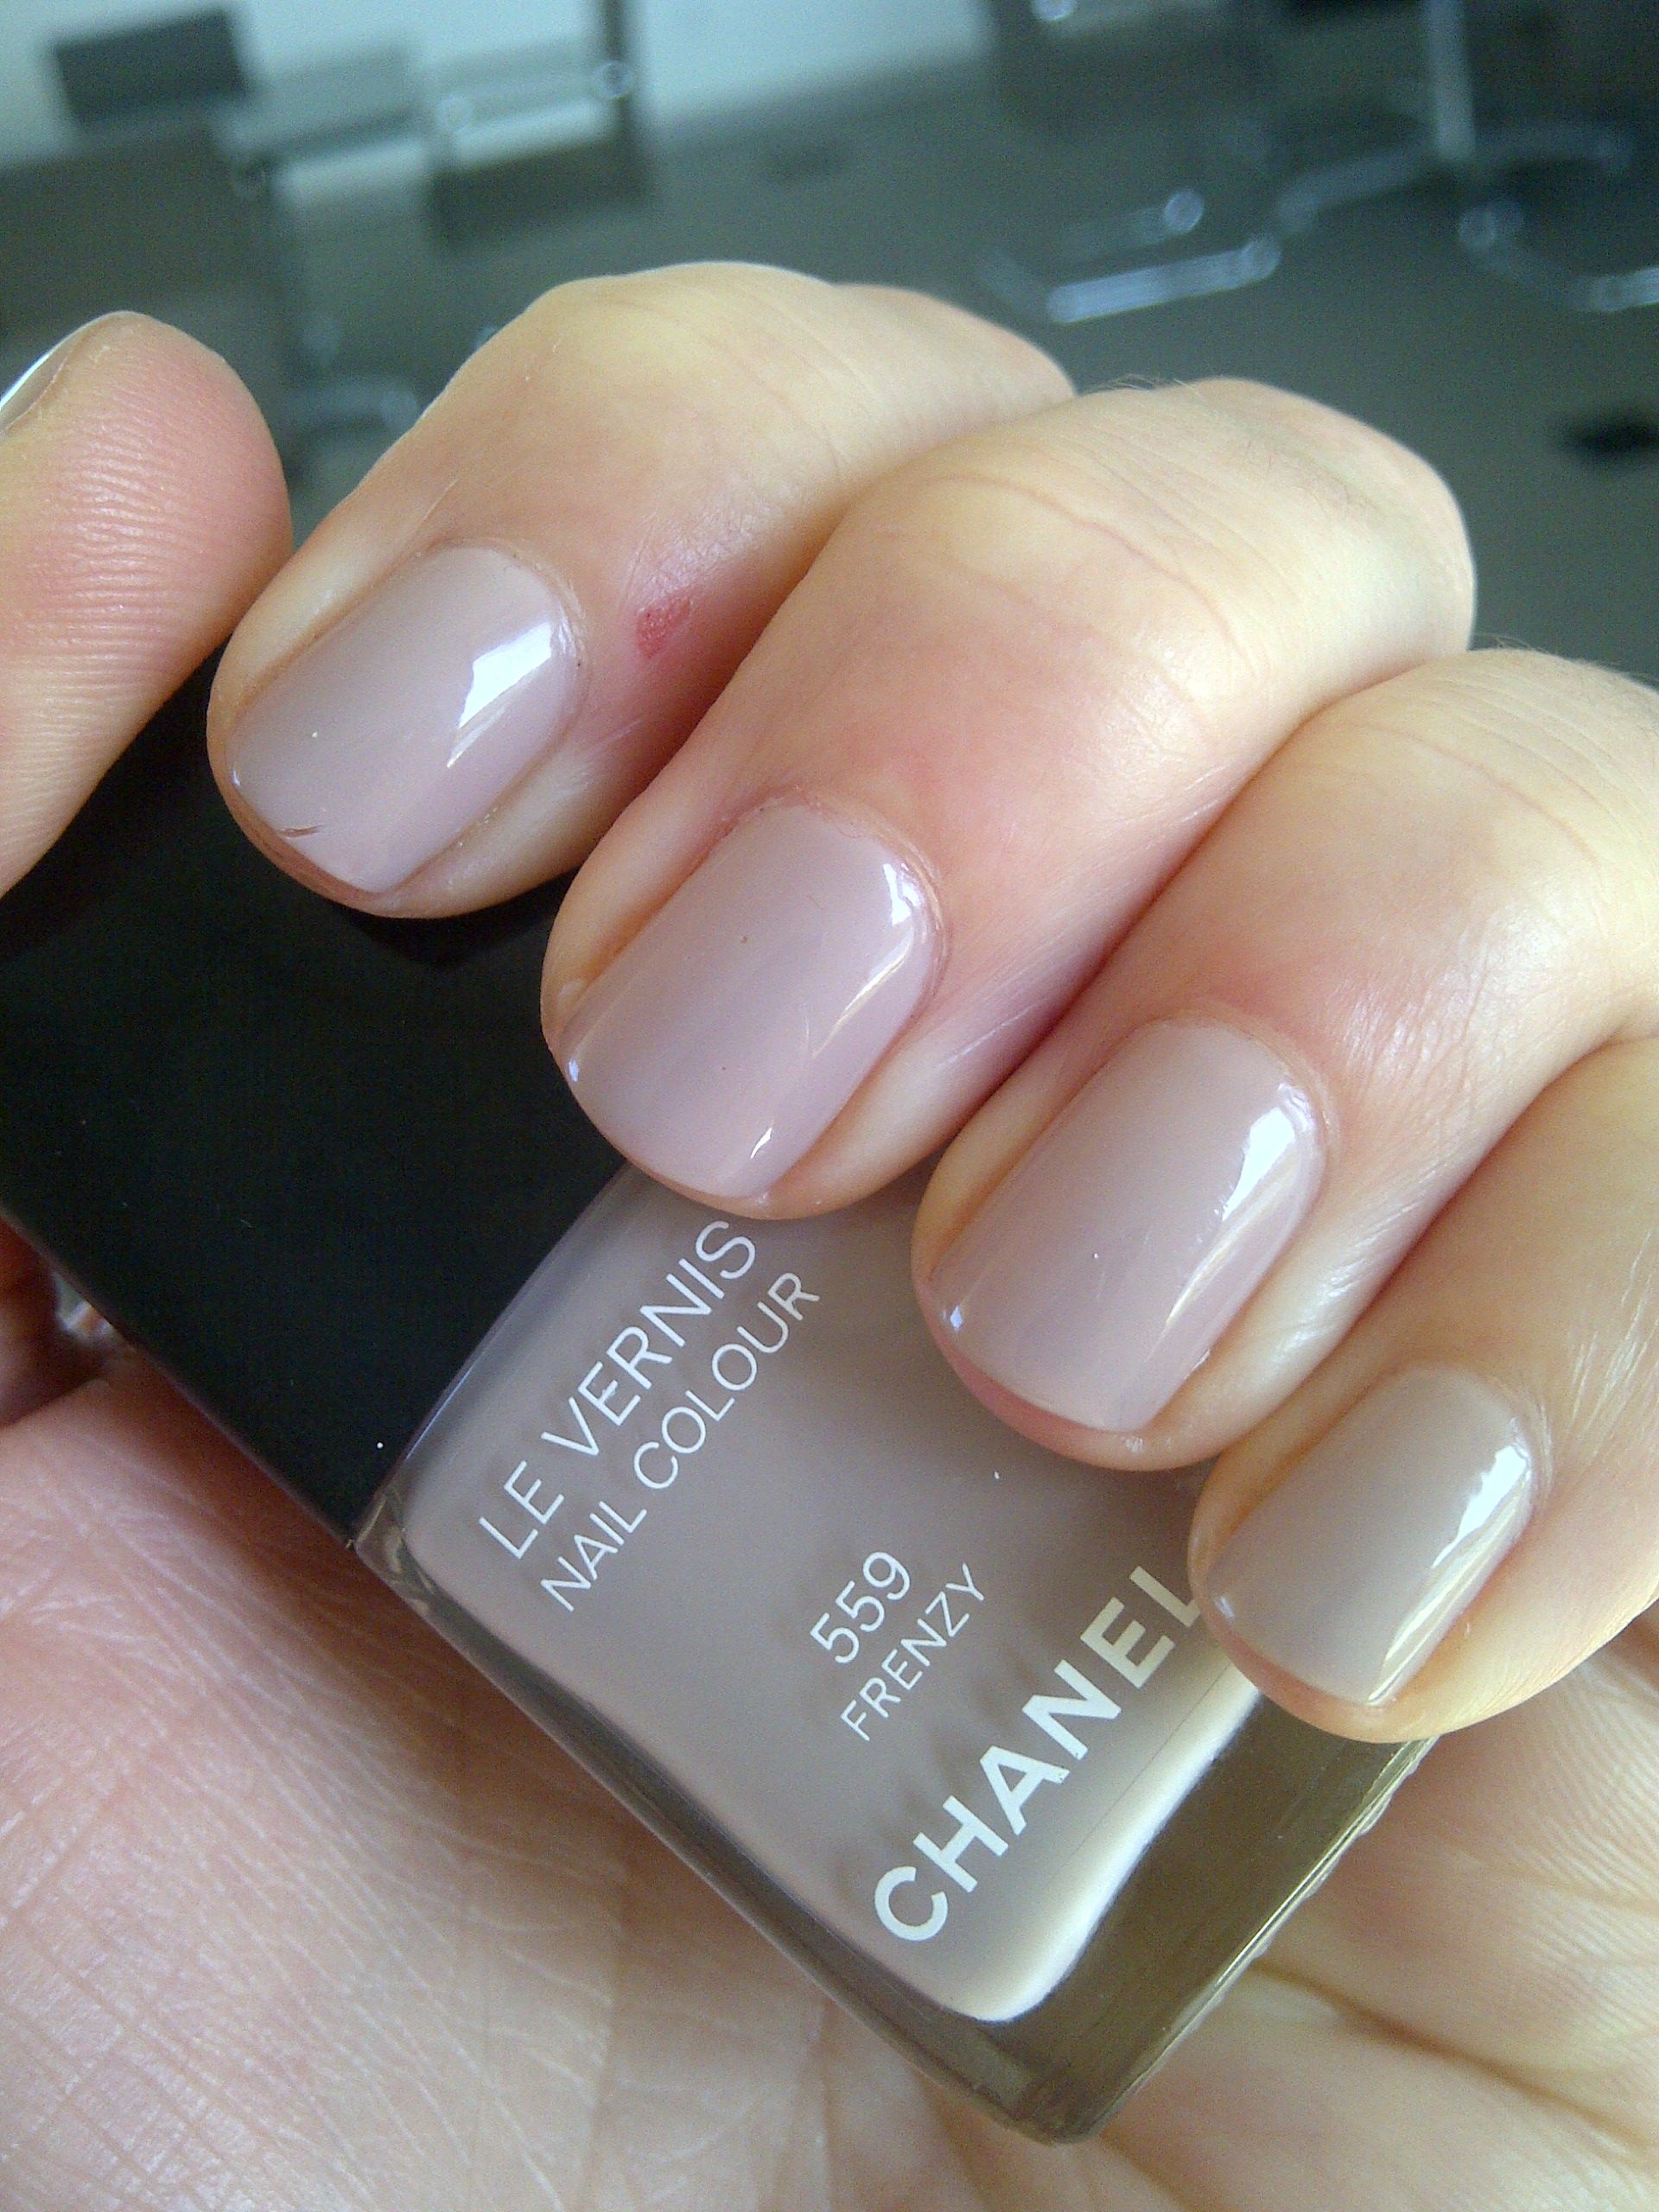 Bien connu Chanel Le Vernis Frenzy 559 nail polish | NAILS - UNHAS  BD83